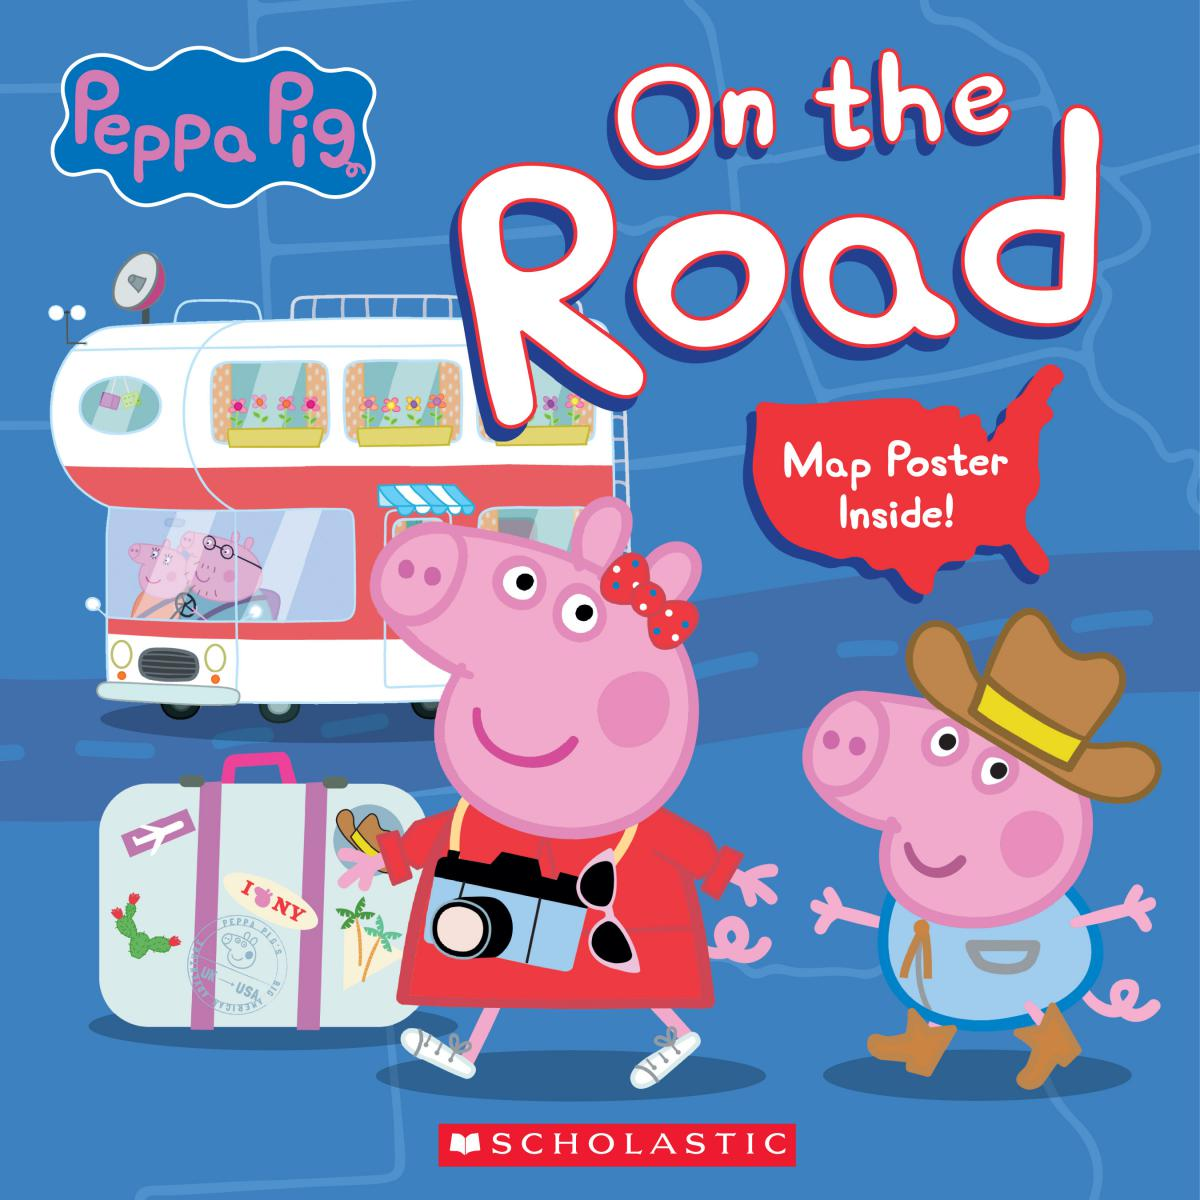 Peppa Pig: On the Road